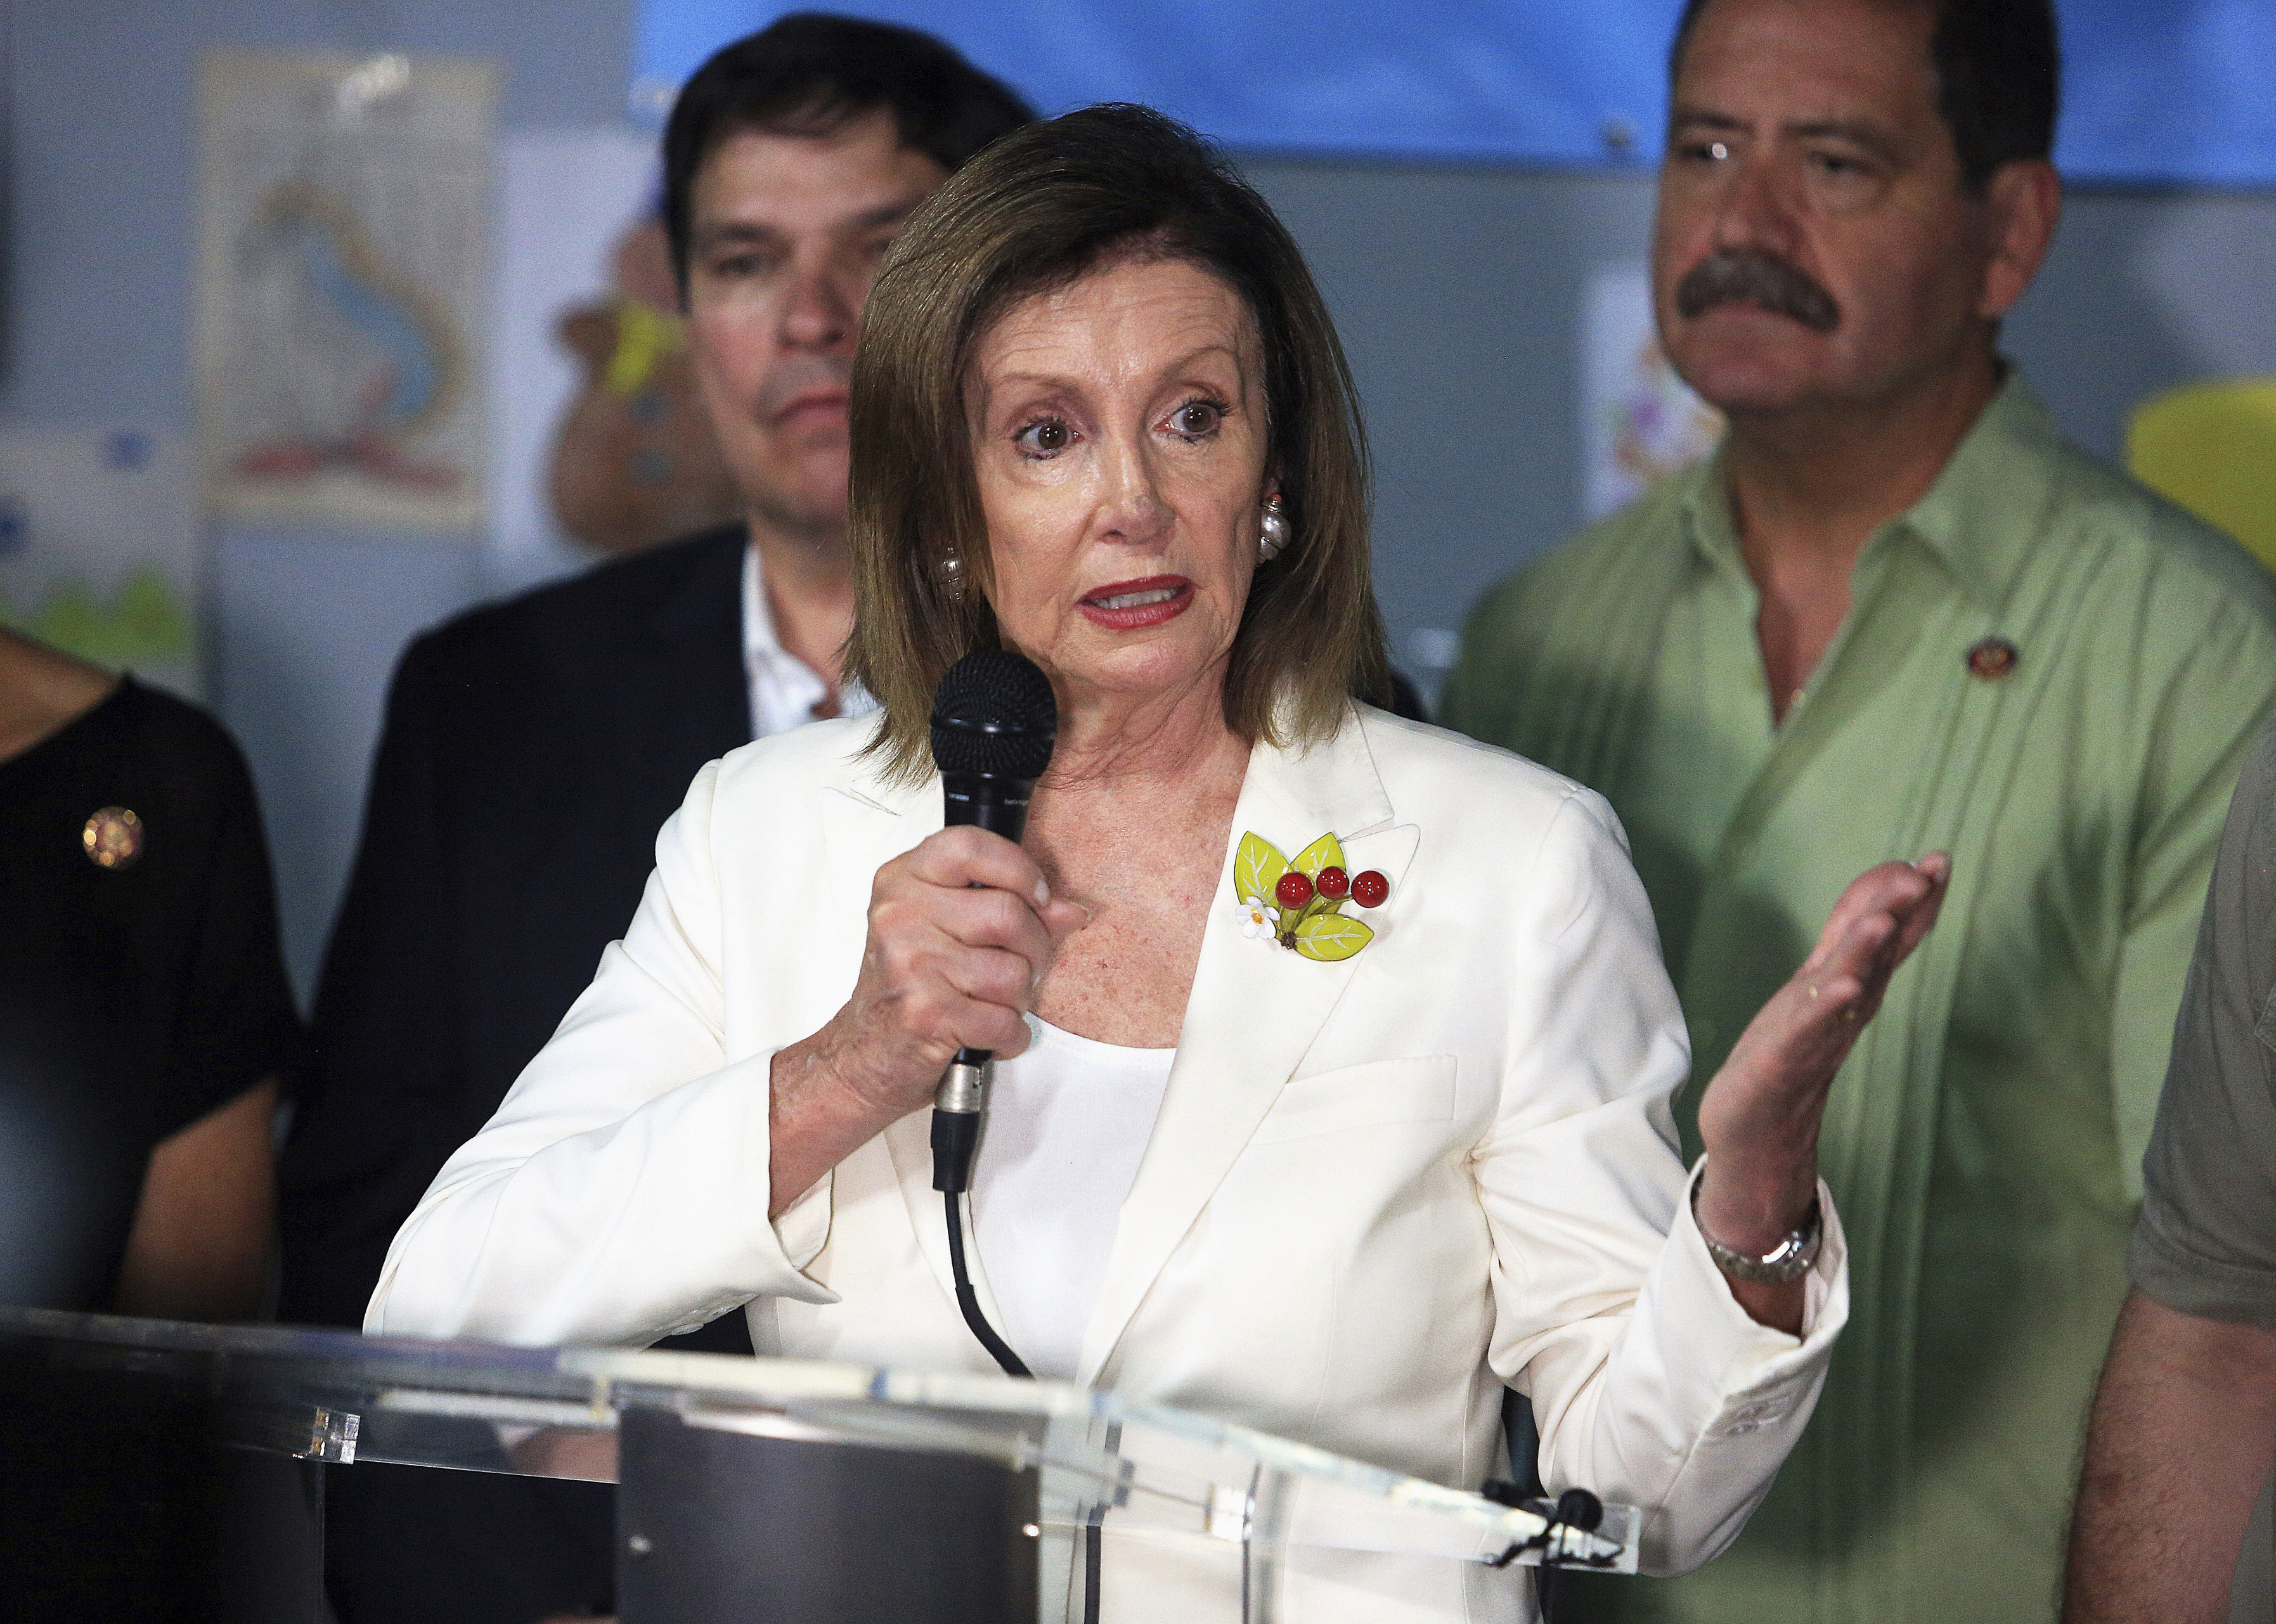 Pelosi: Trump's comments on Hong Kong 'invite miscalculation' by Beijing